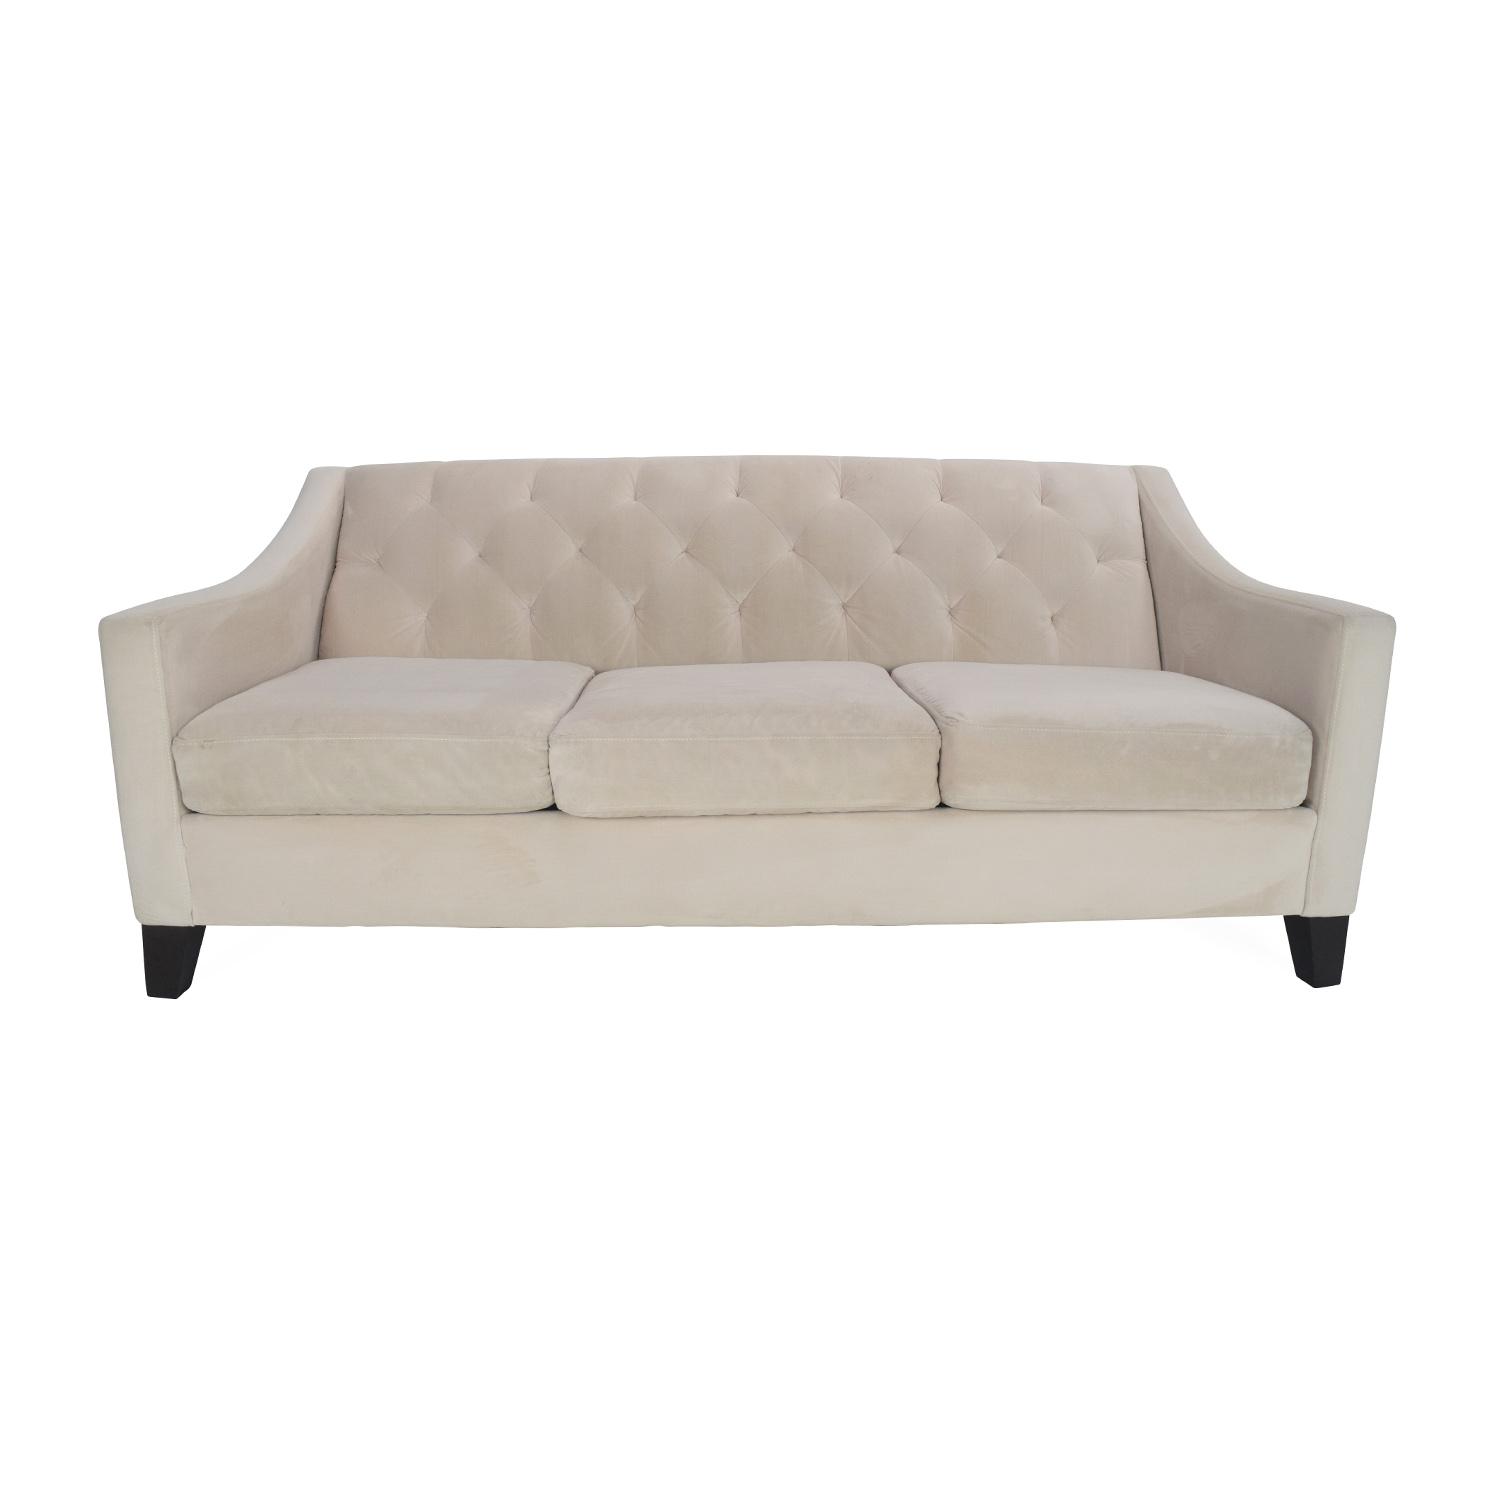 58% OFF Max Home Furniture Macy s Chloe Tufted Sofa Sofas